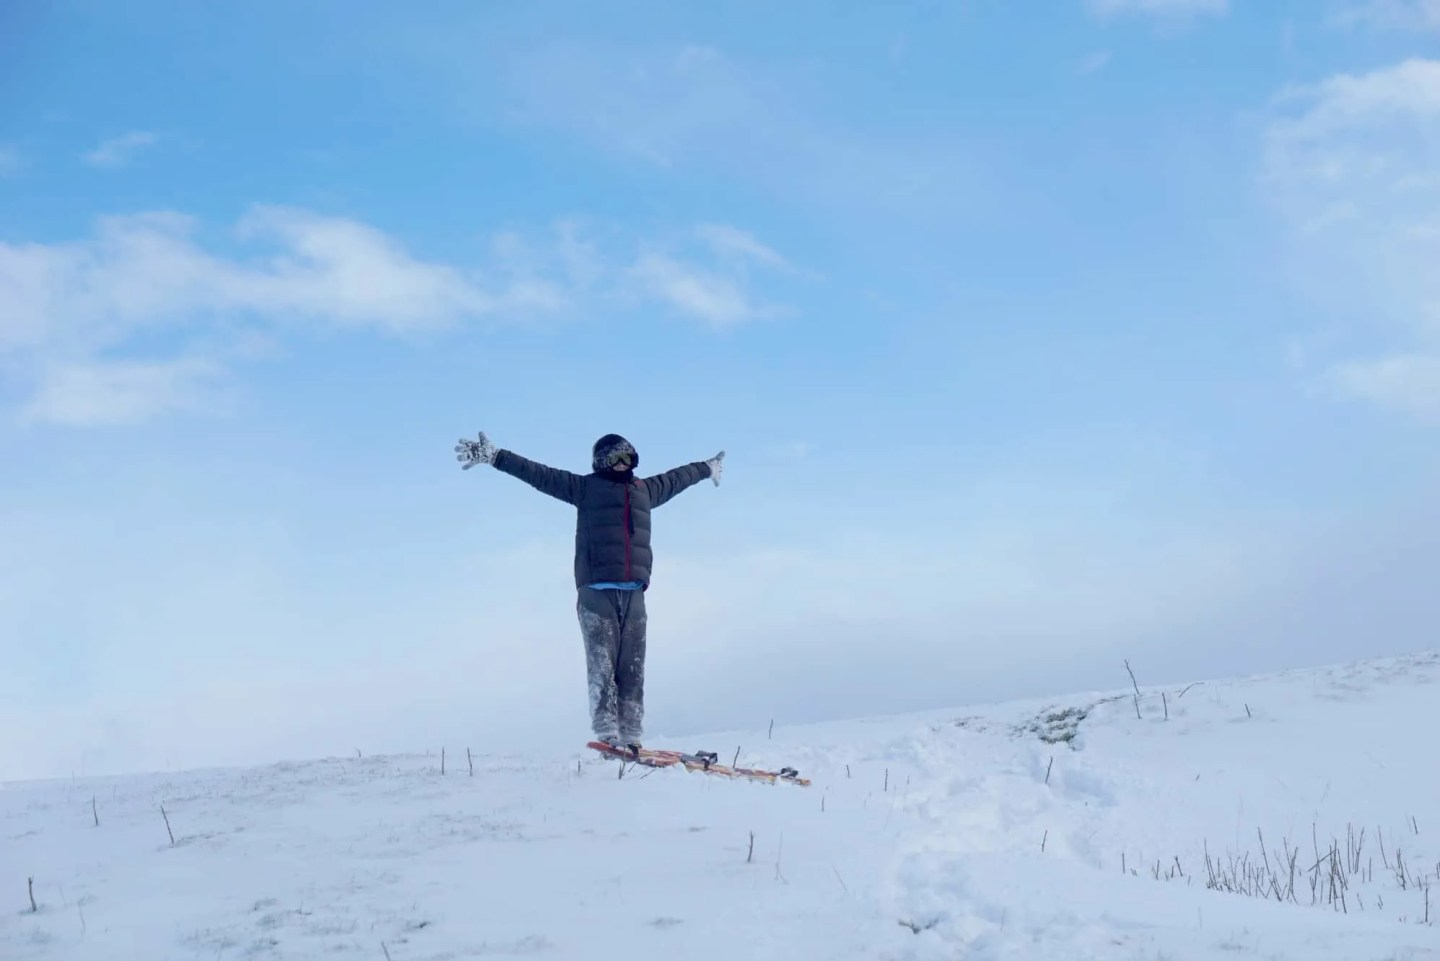 My Weekly Round up a snowing day at the foot of pendle hill